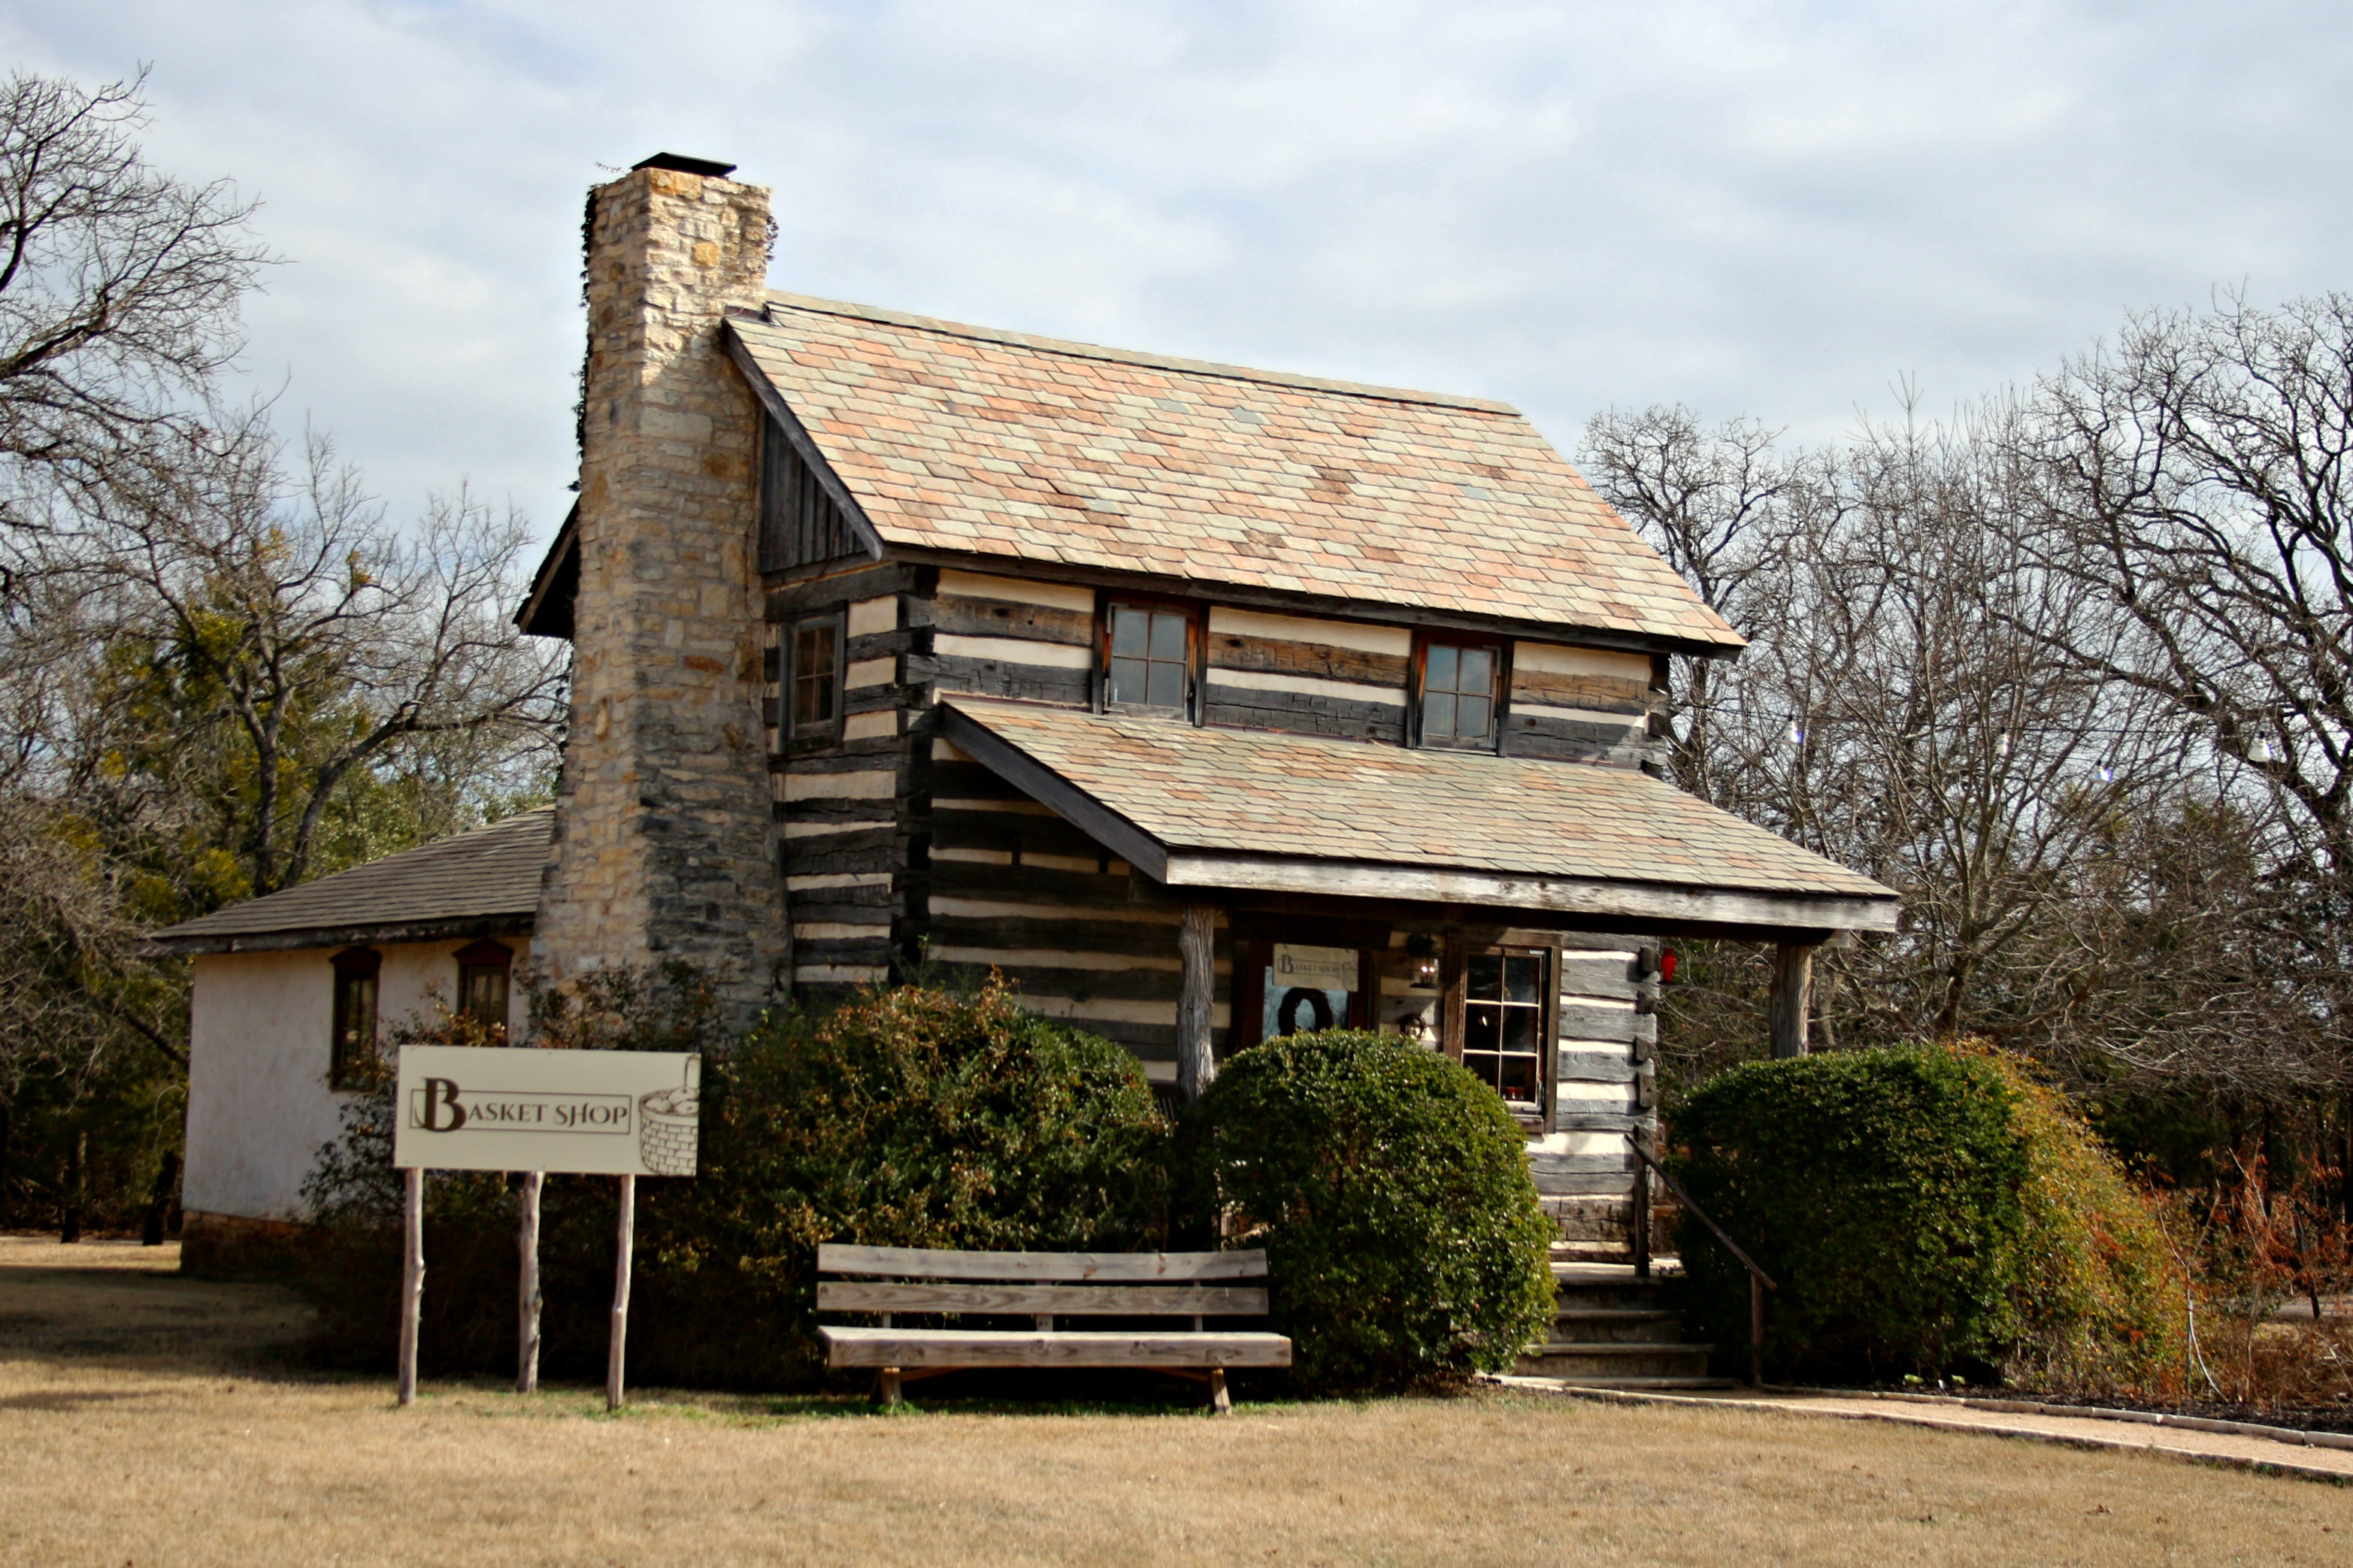 If you are looking for things to do in Waco Texas, check out Homestead Craft Village!